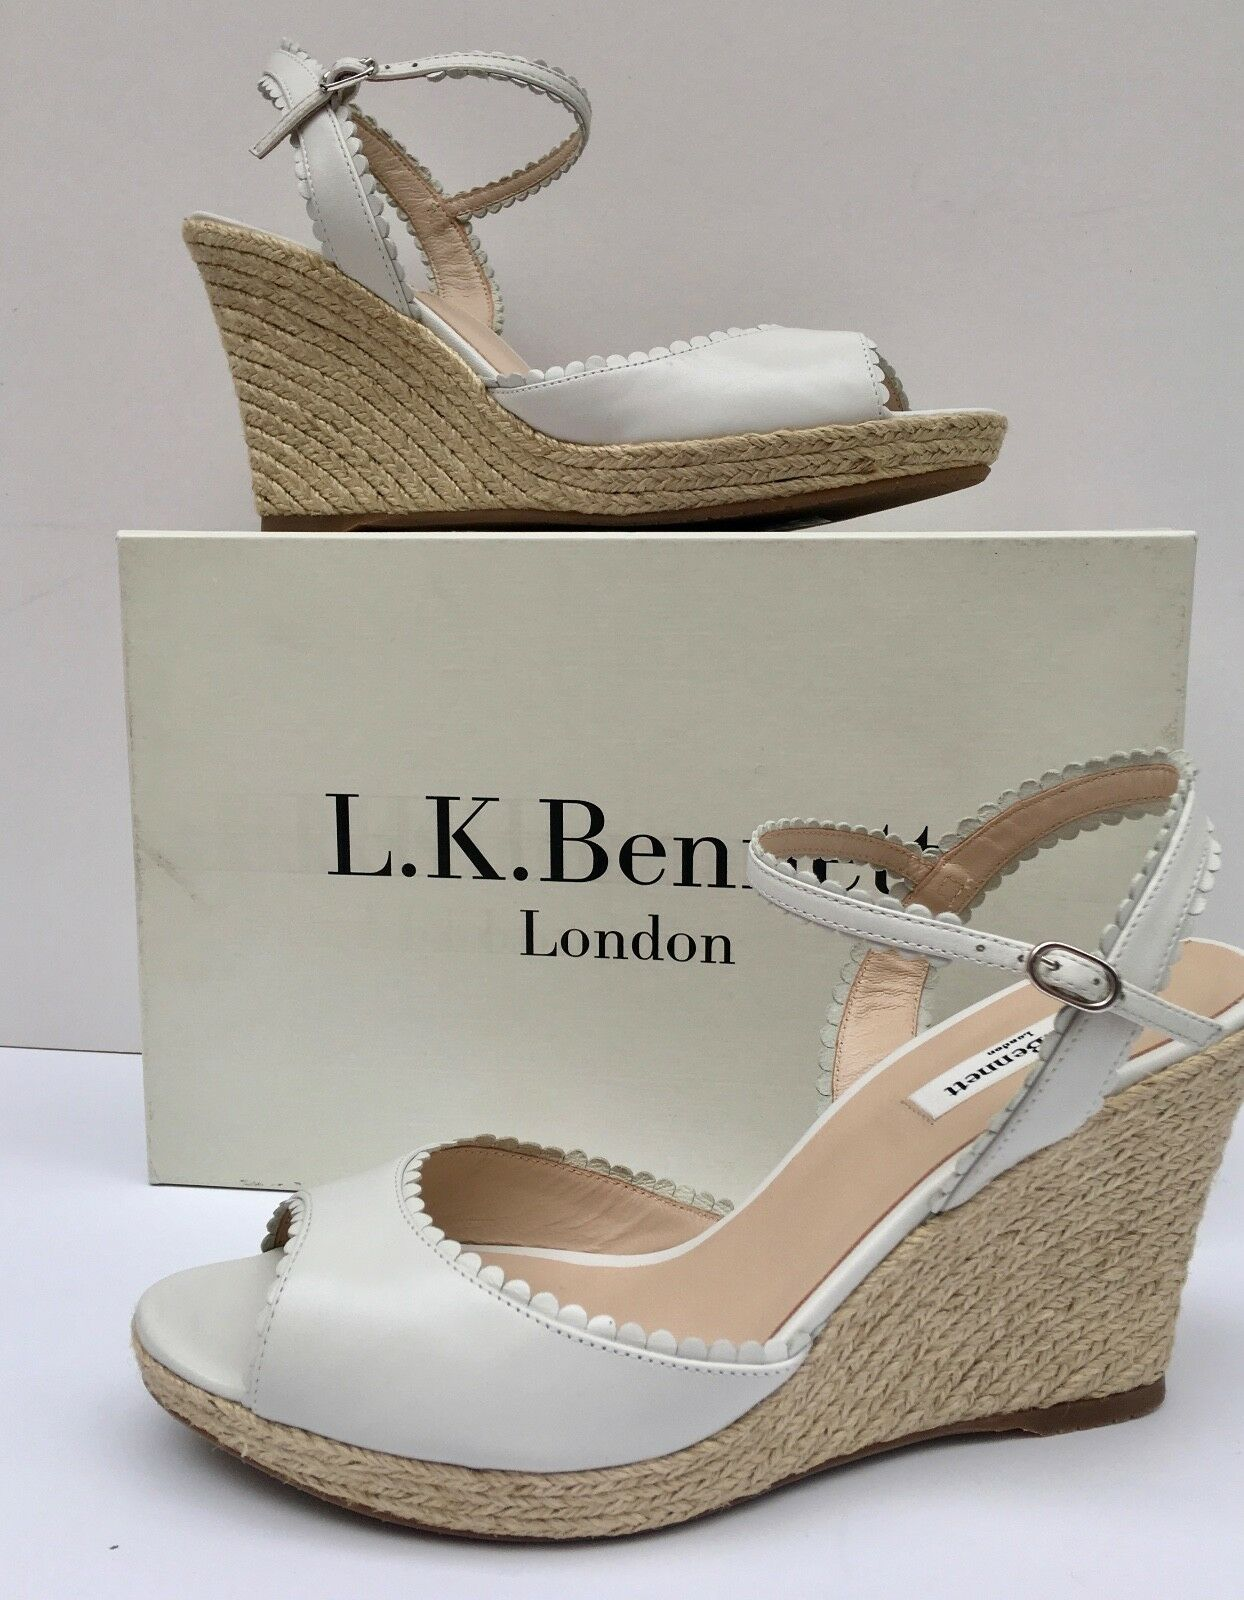 NEW was   LK BENNETT EU41 UK8 'SEVE' OFF WHITE LEATHER 4  WEDGE -ANKLE STRAP